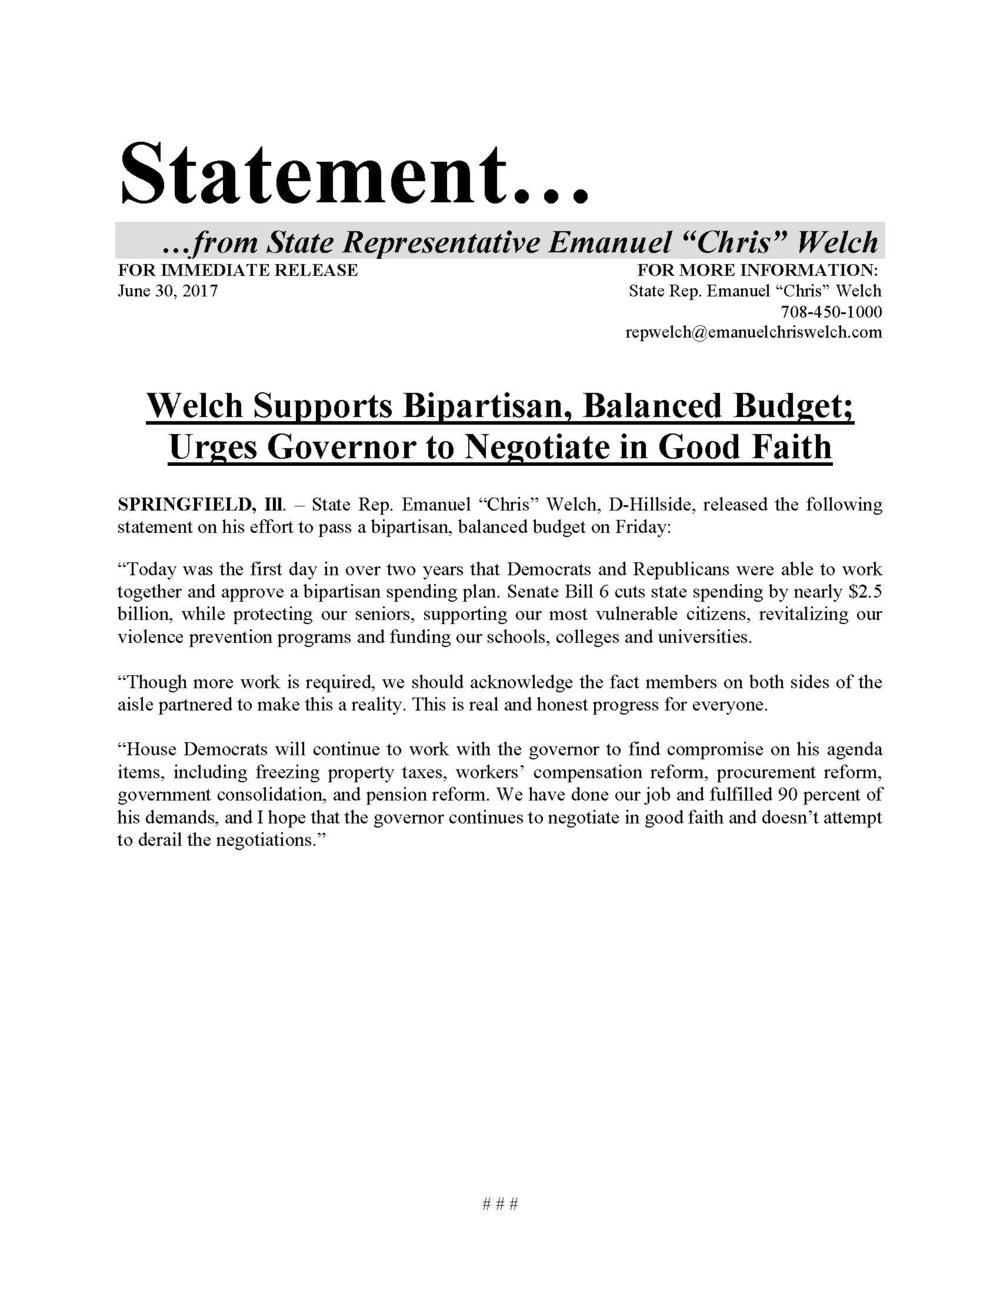 Welch Supports Bipartisan, Balanced Budget  (June 30, 2017)